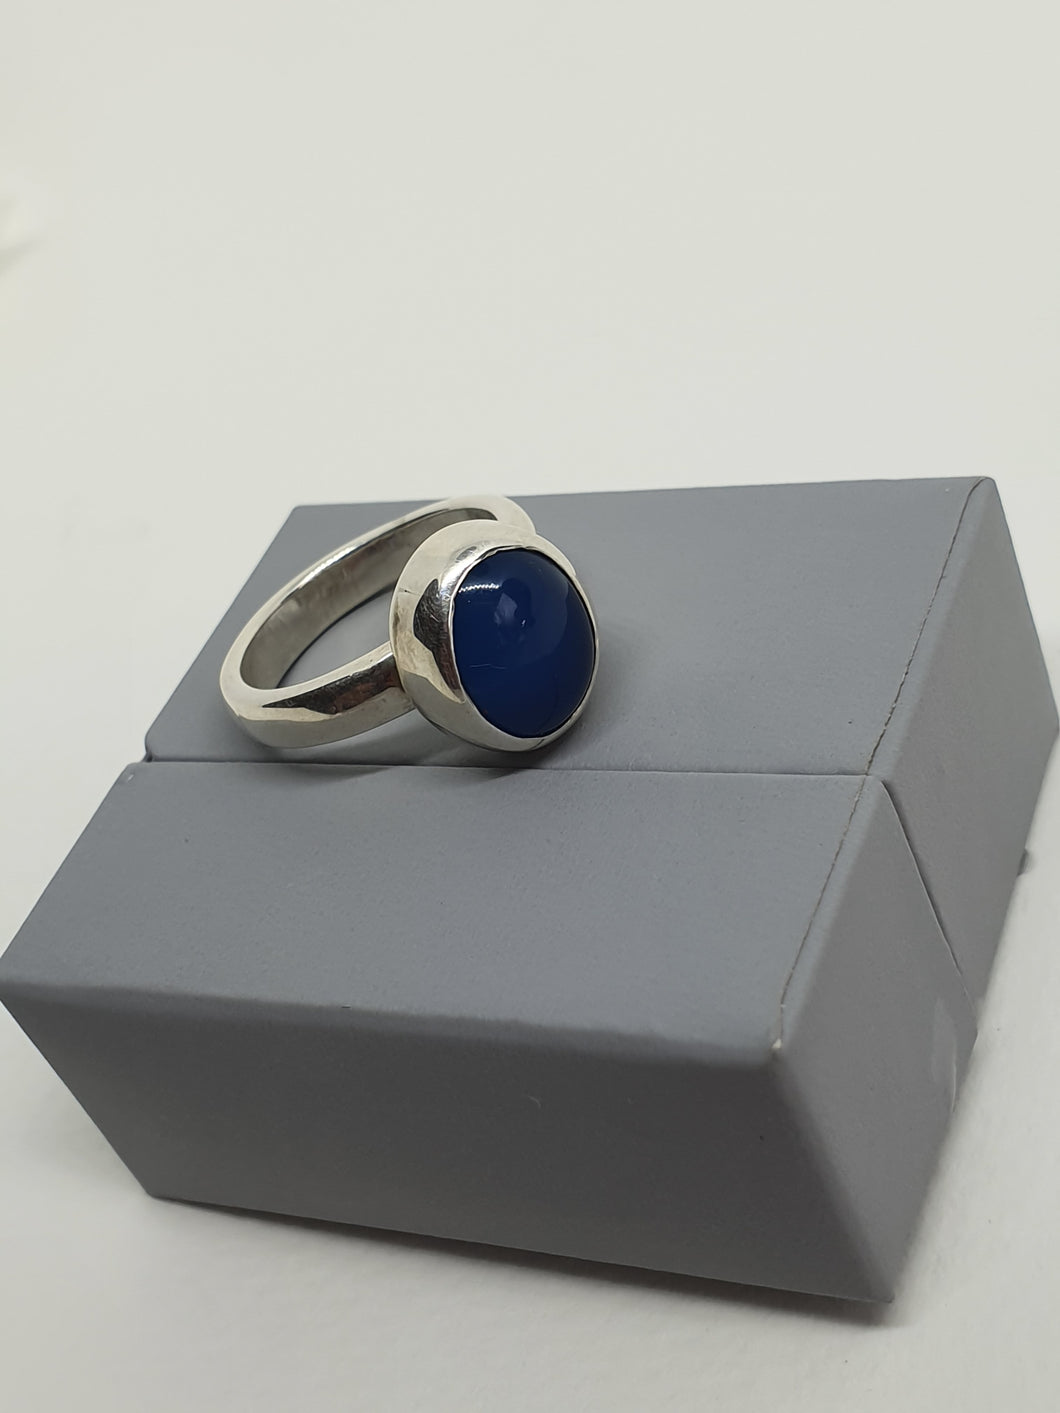 SOLD! 925 serling silver ring with a blue agate gemstone